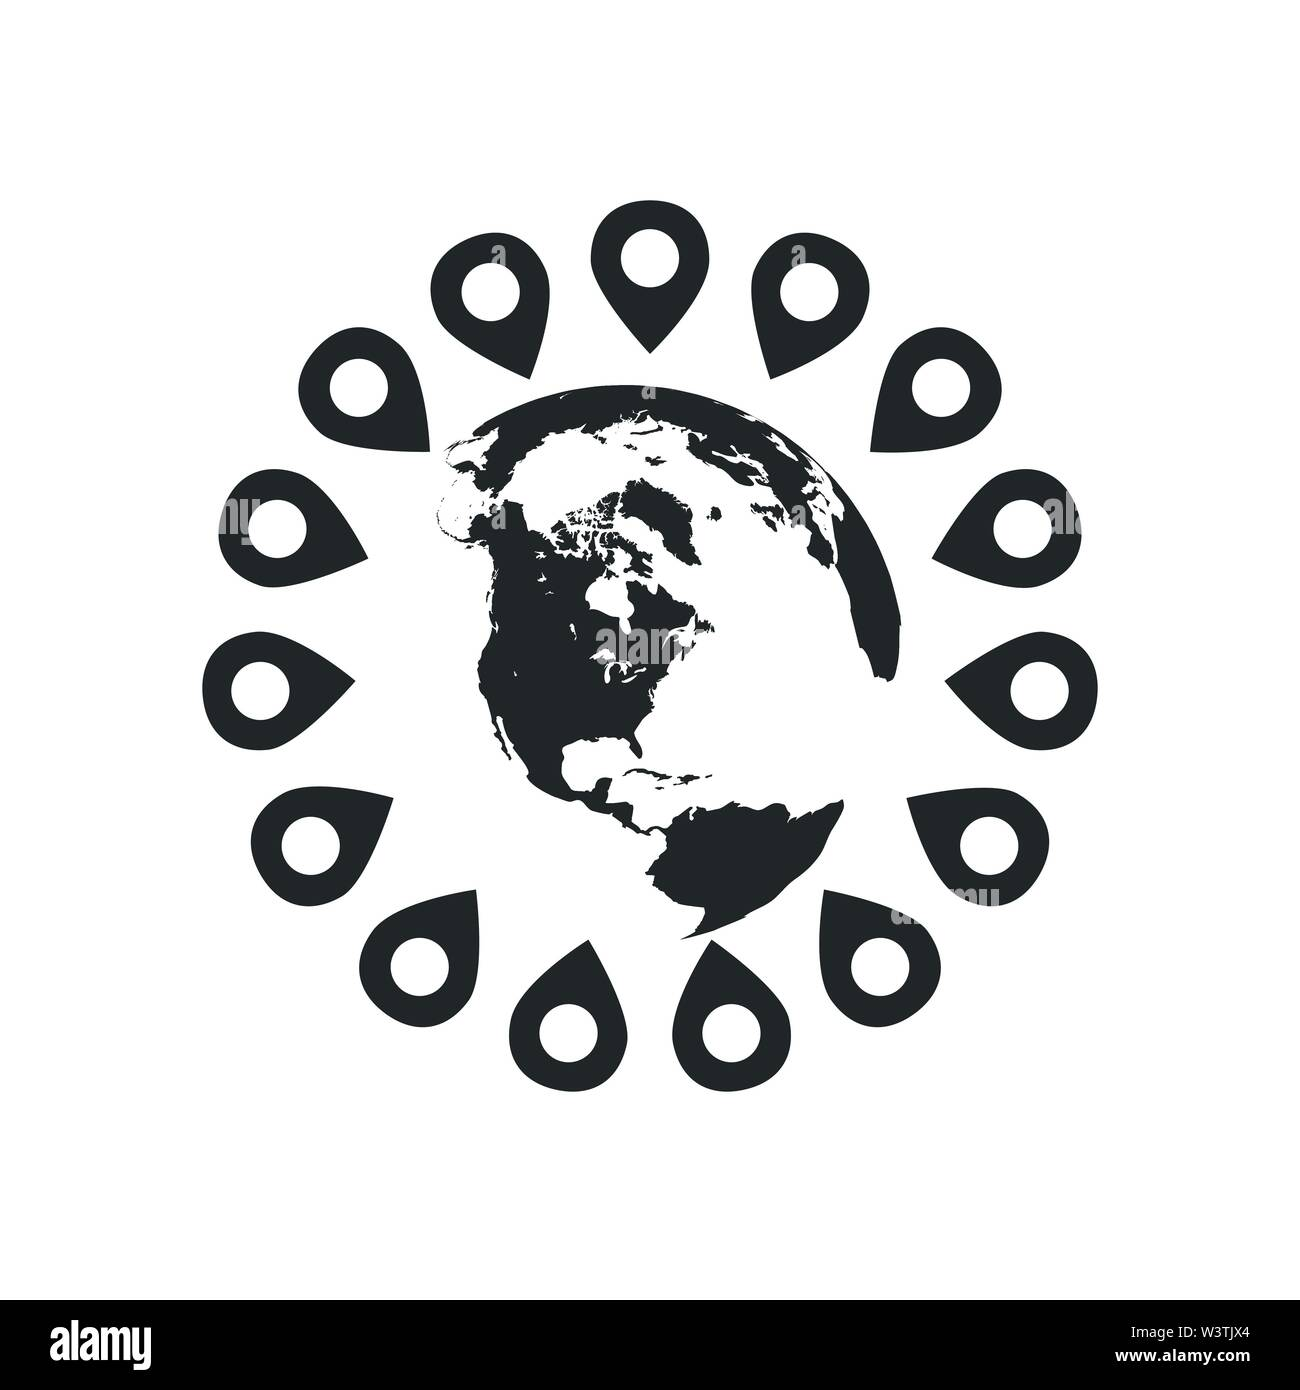 world map with pins around the globe. concept of trip around the world, globalization, geolocation search, tourism. Vector illustration isolated on wh - Stock Vector